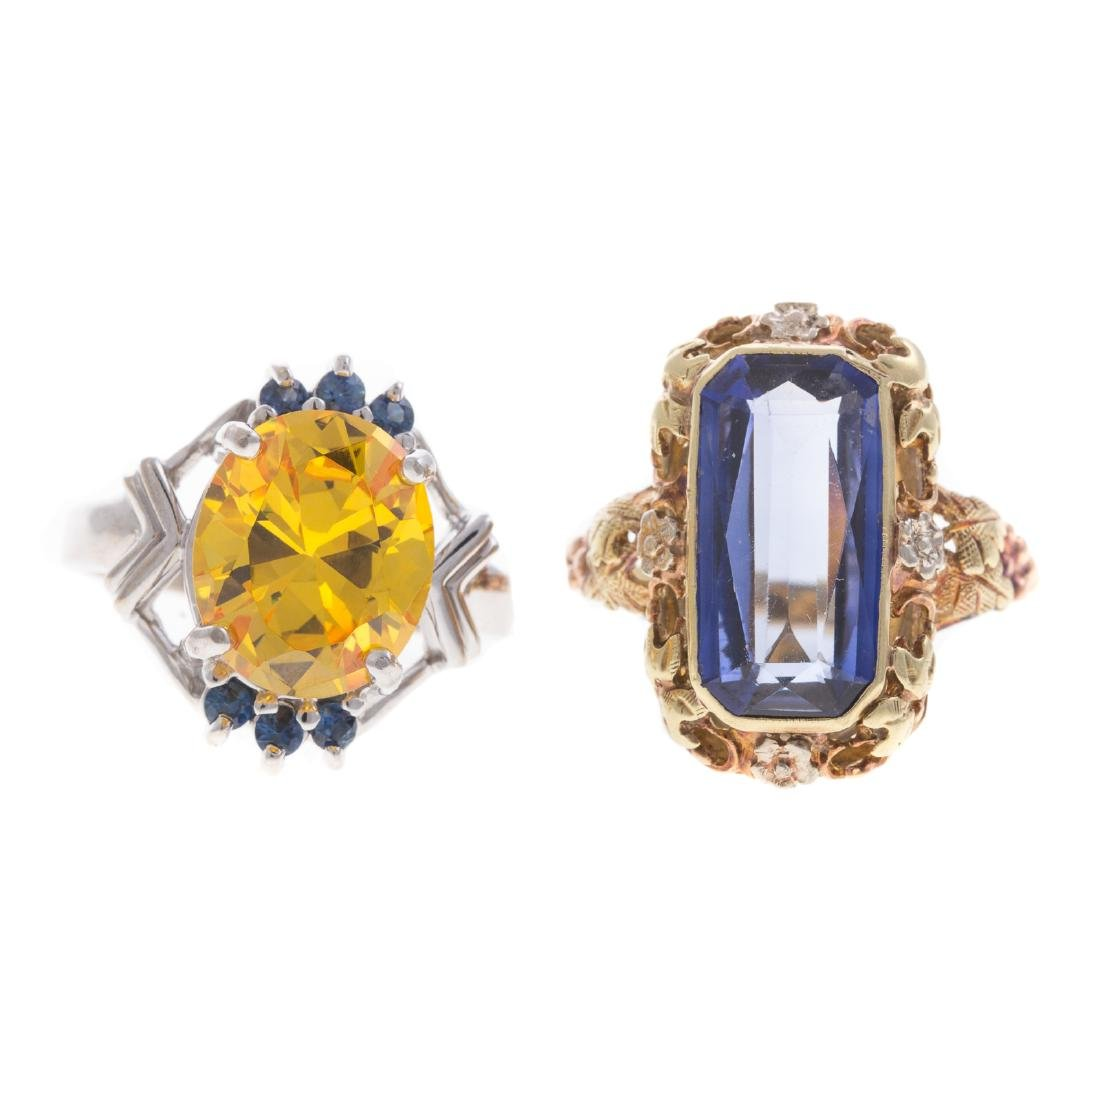 A Pair of Lady's Colored Gemstone Rings in Gold